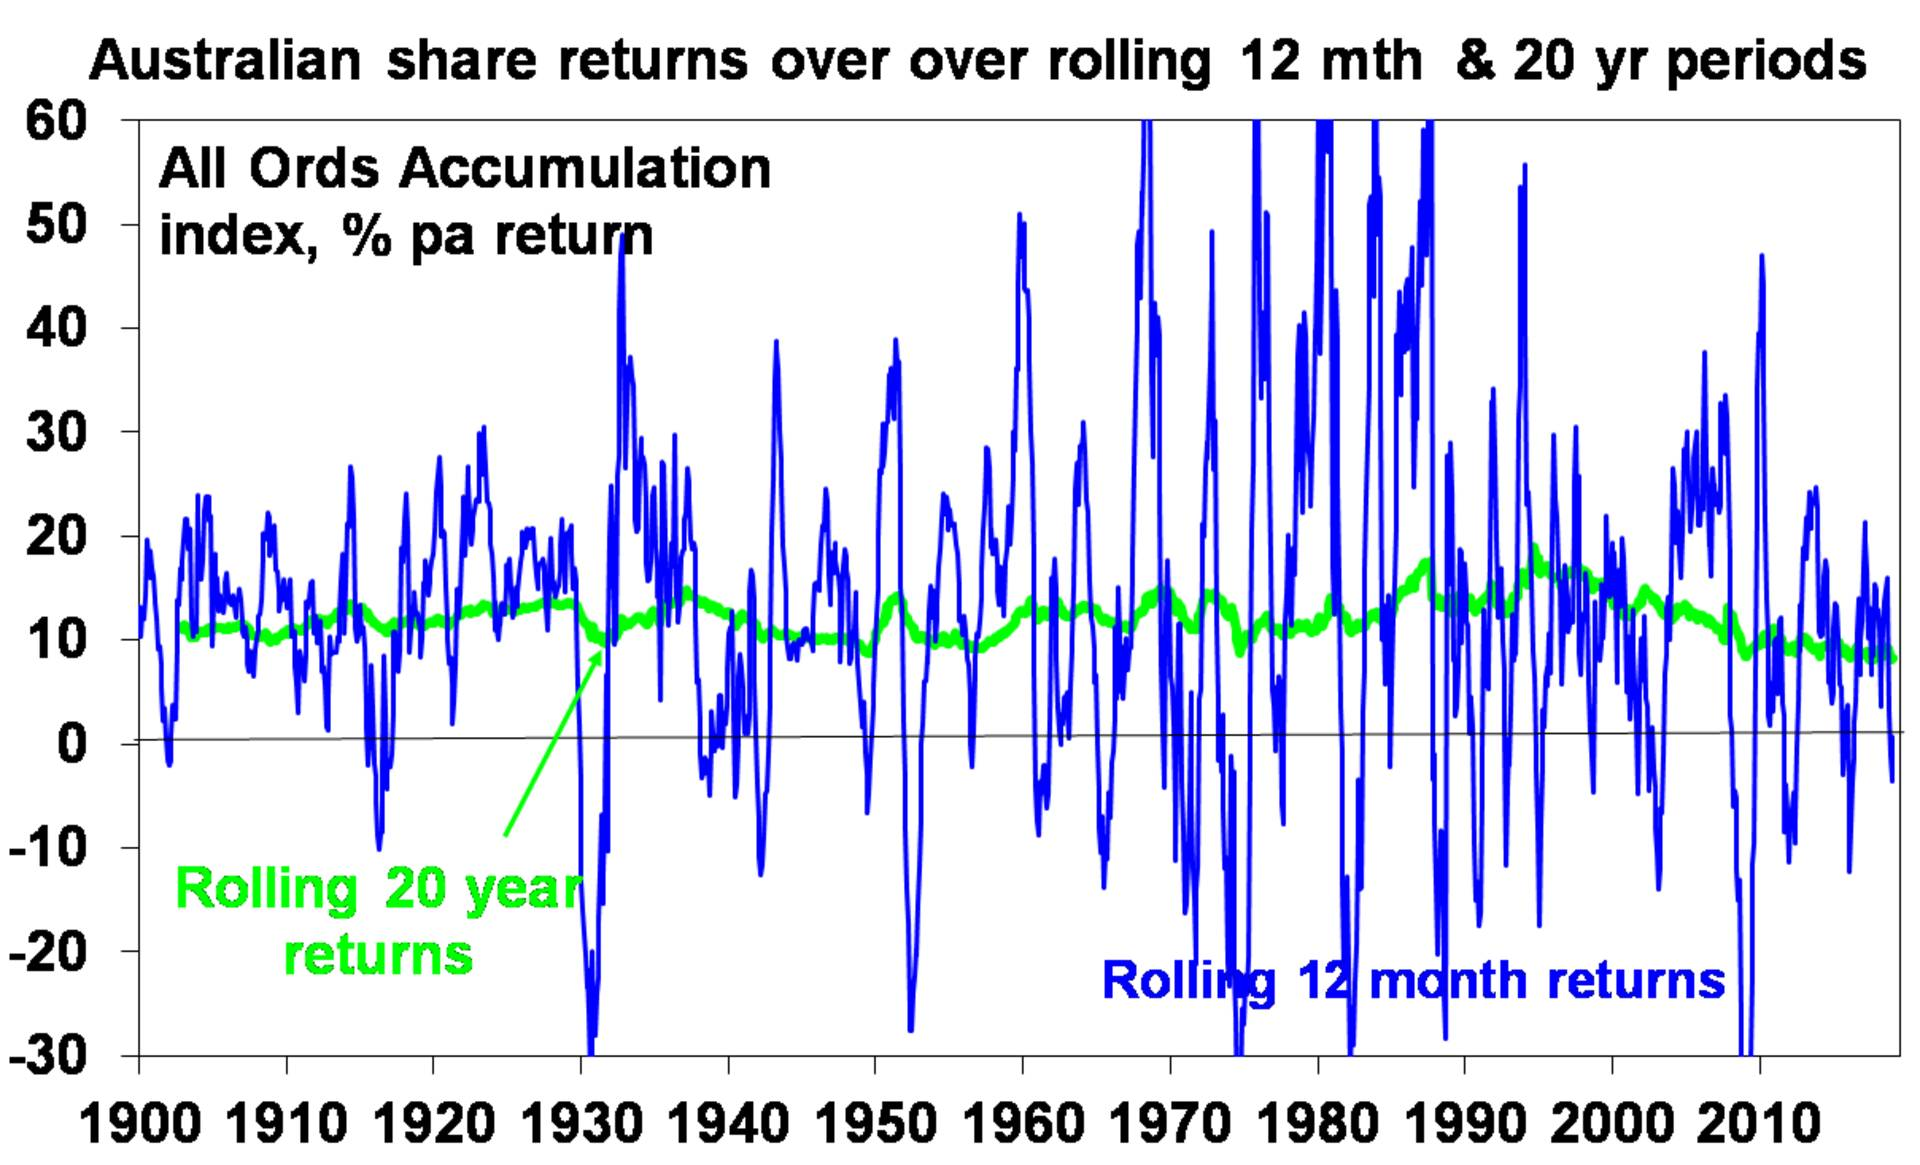 Australian share returns over over rolling 12 mth & 20 yr periods